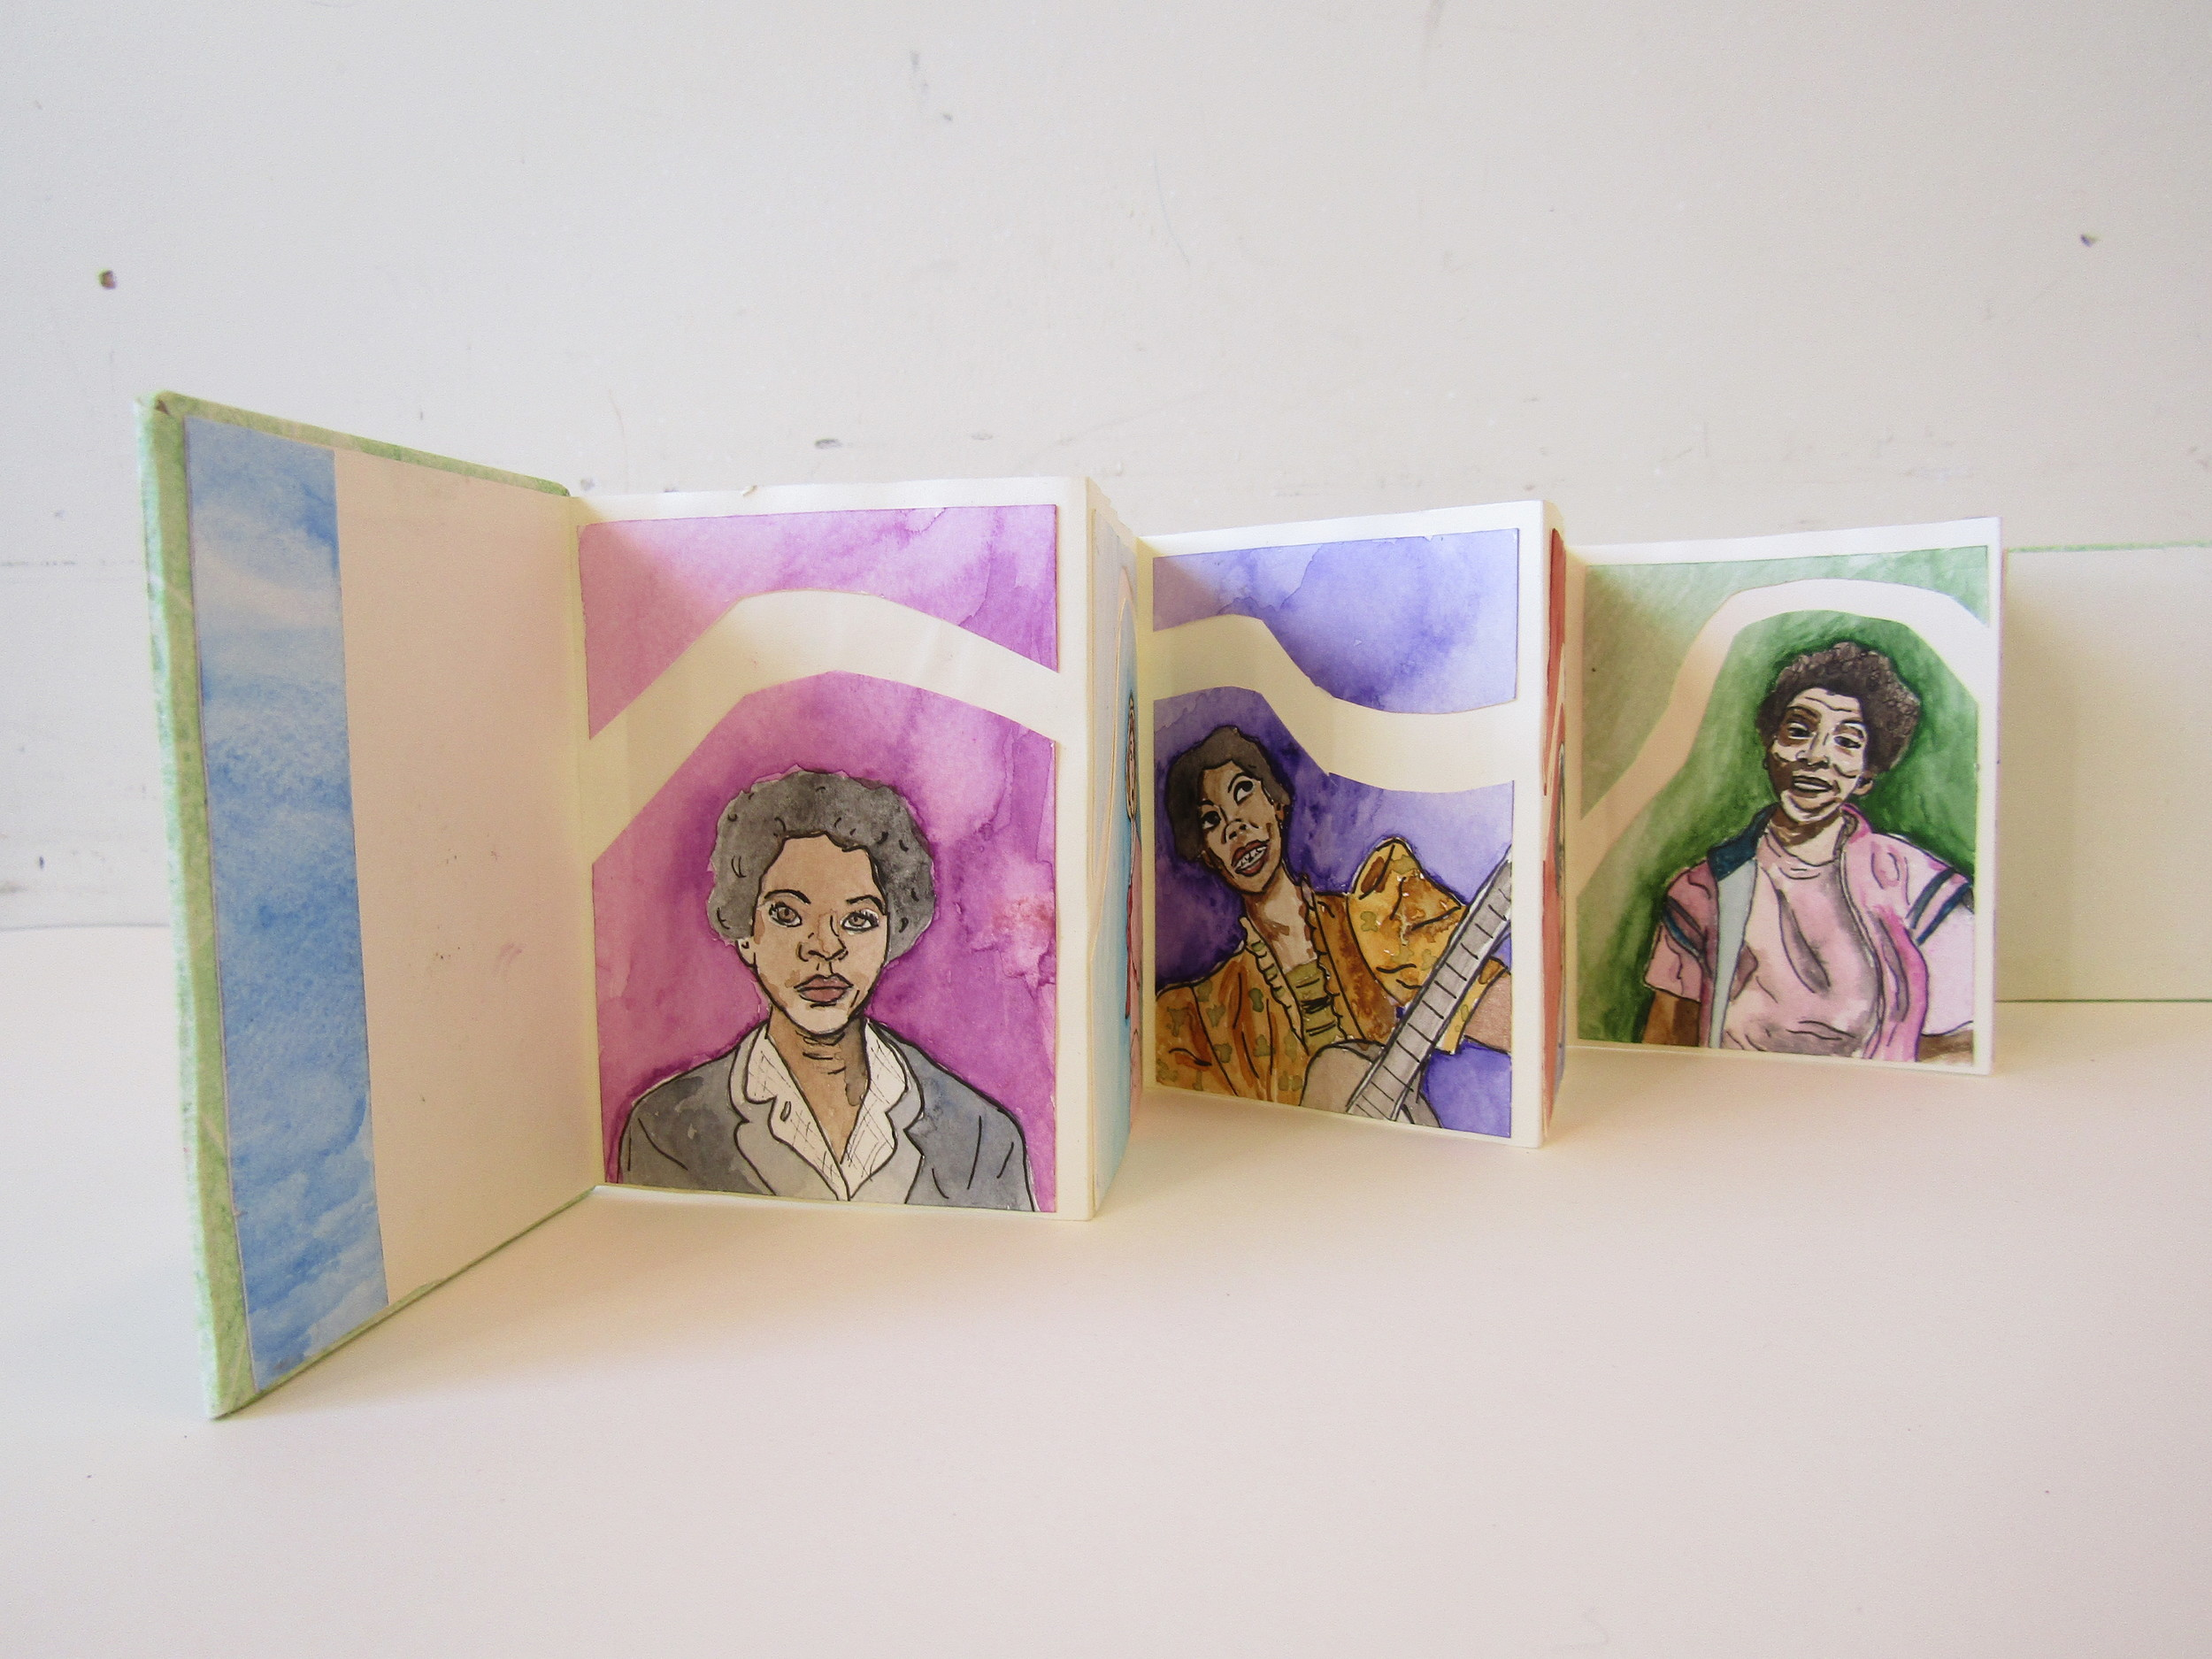 Accordion Book With Painted Images